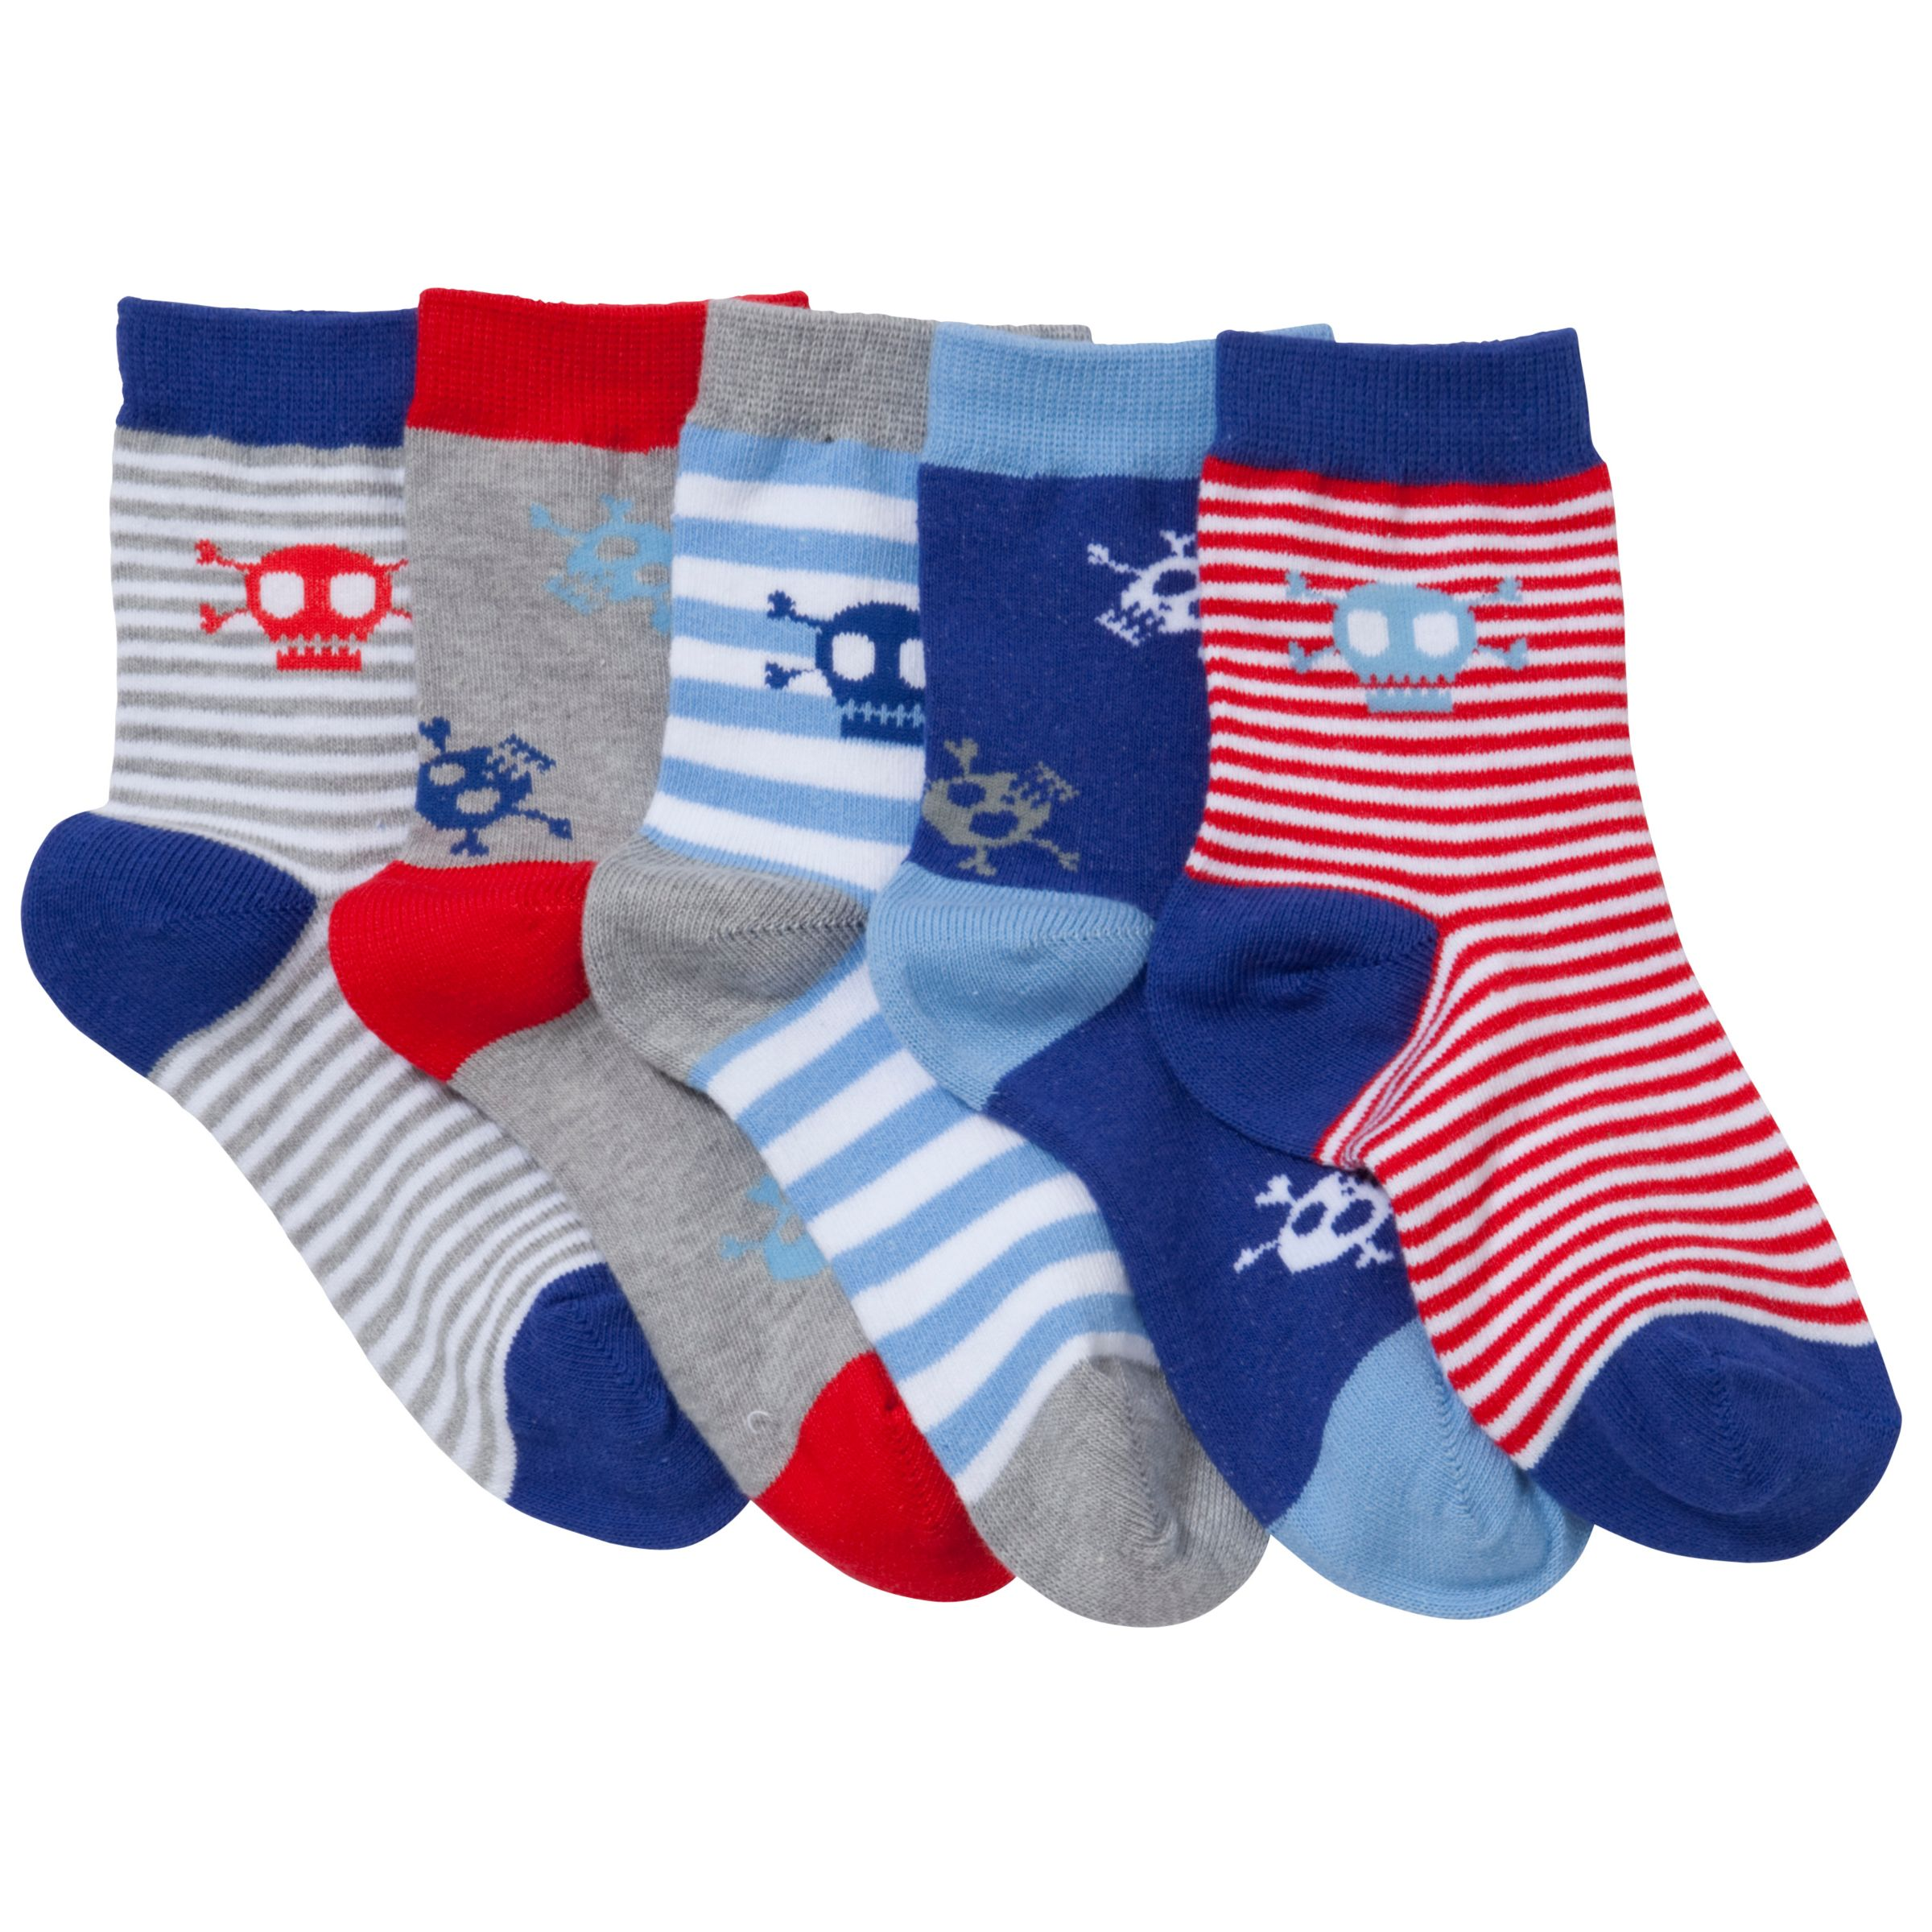 John Lewis Boy Skulls Socks, Pack of 5, Blue